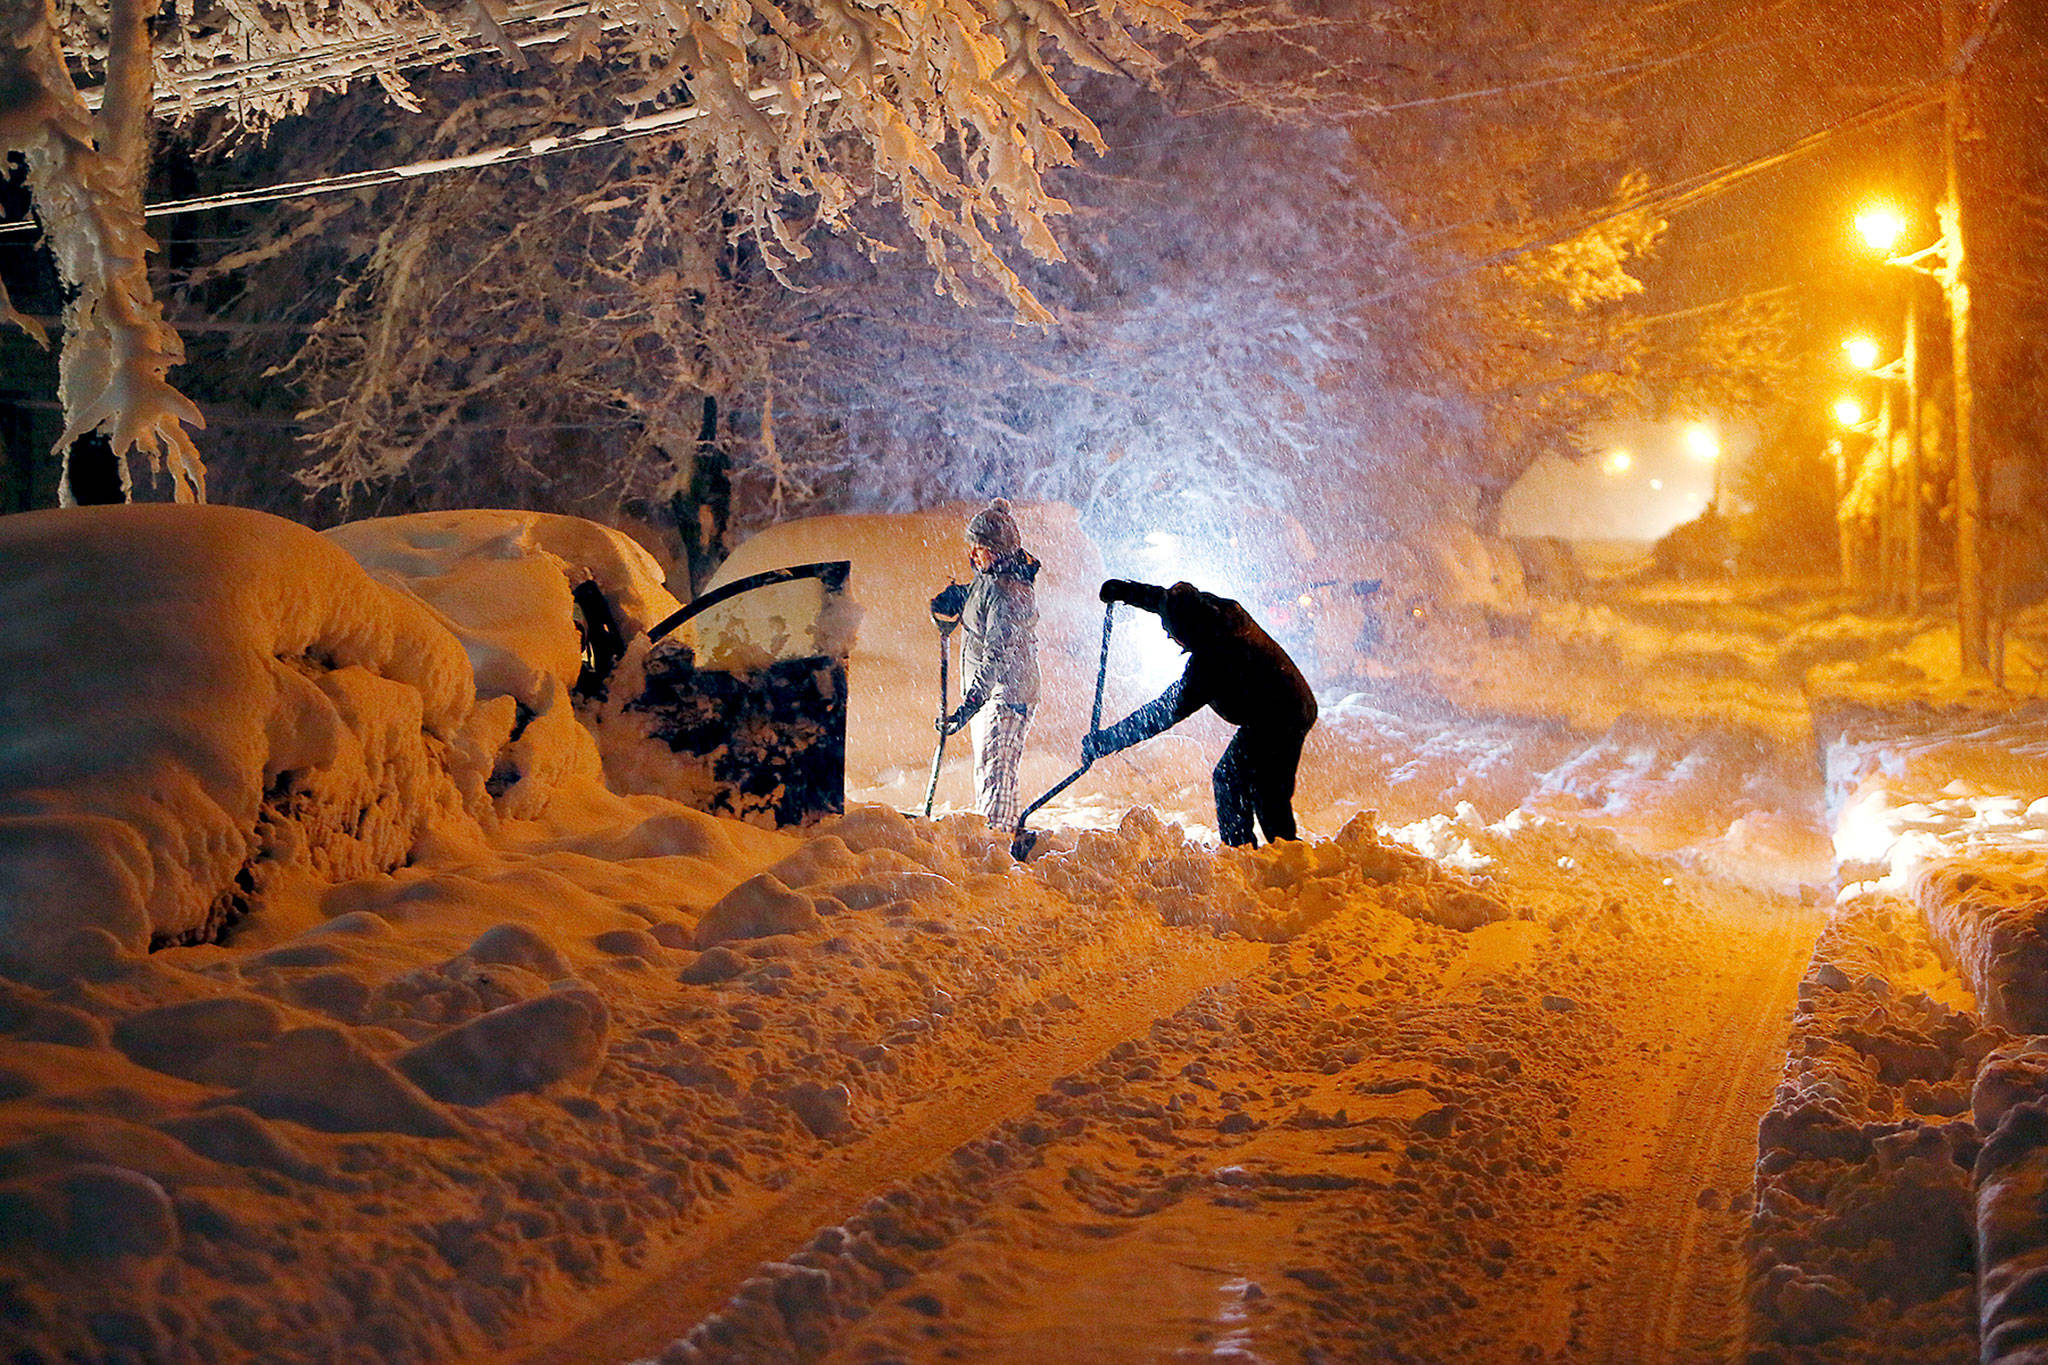 Residents dig out their car after a snowstorm dumped over a foot of snow Wednesday in Morristown, New Jersey. (Bob Karp/The Record via AP)